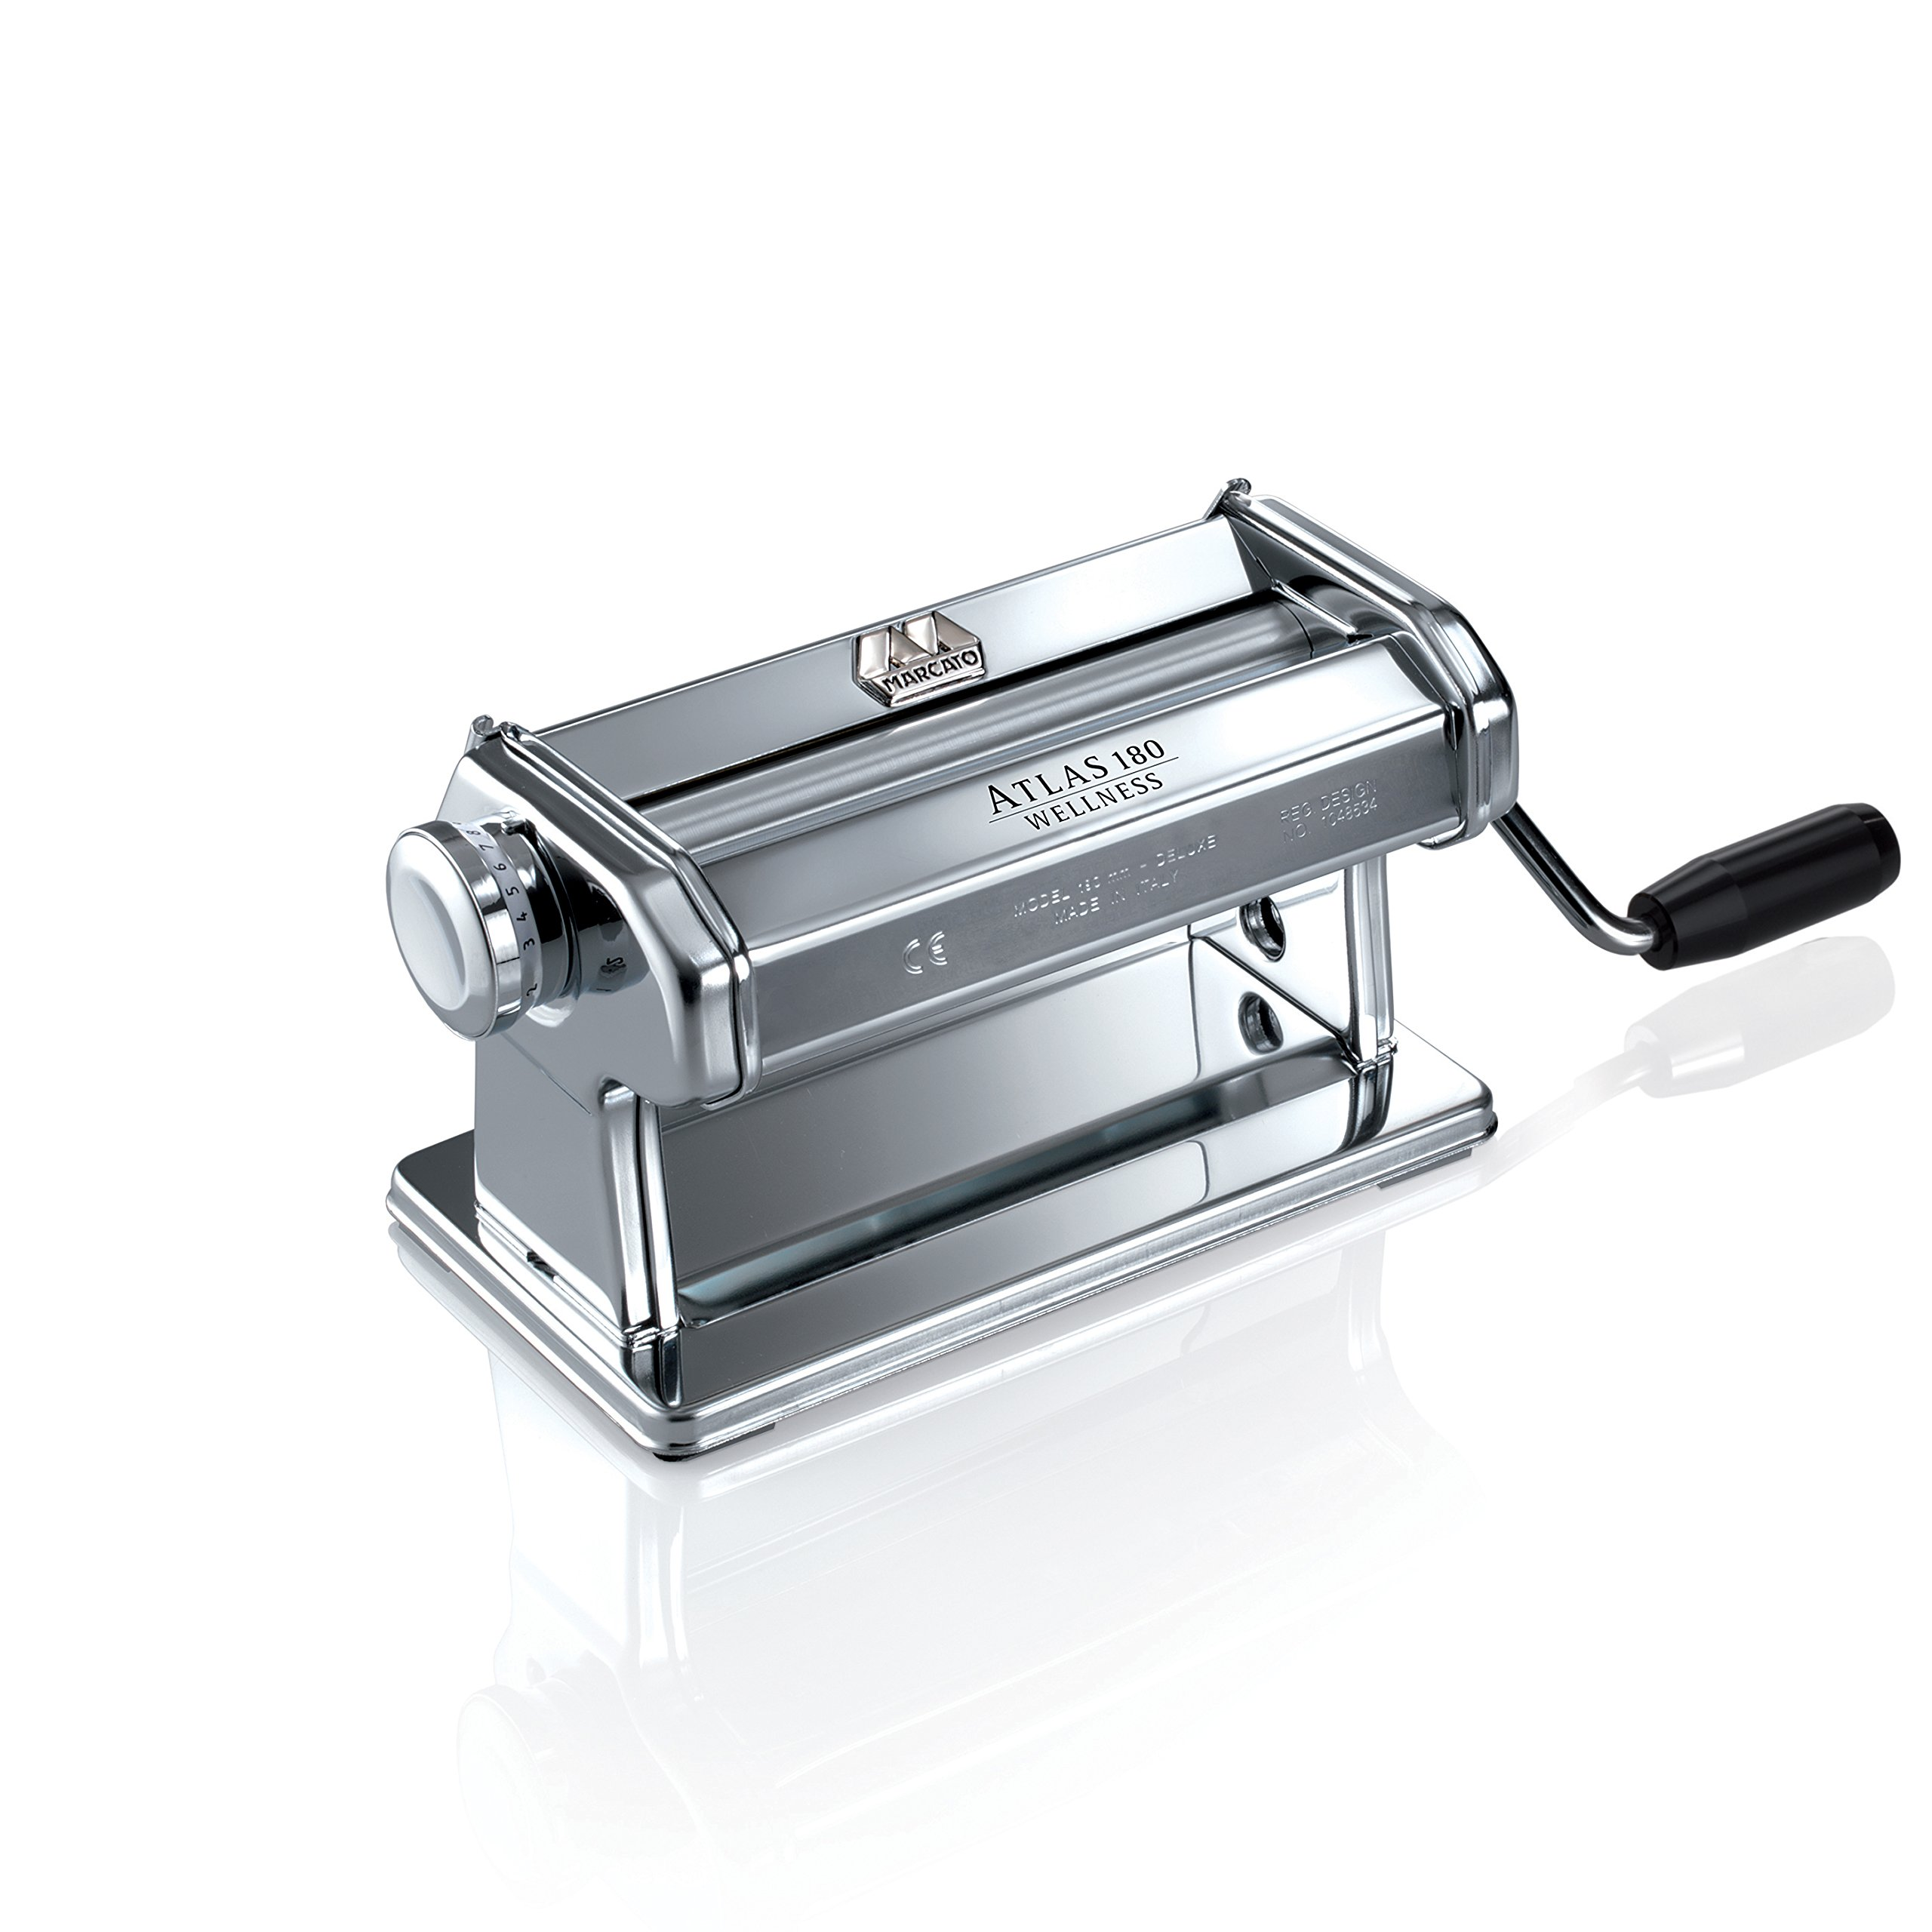 Marcato 8342 Atlas Pasta Dough Roller, Made in Italy, Includes 180-Millimeter Pasta Roller with Hand Crank and Instructions, Silver by Marcato